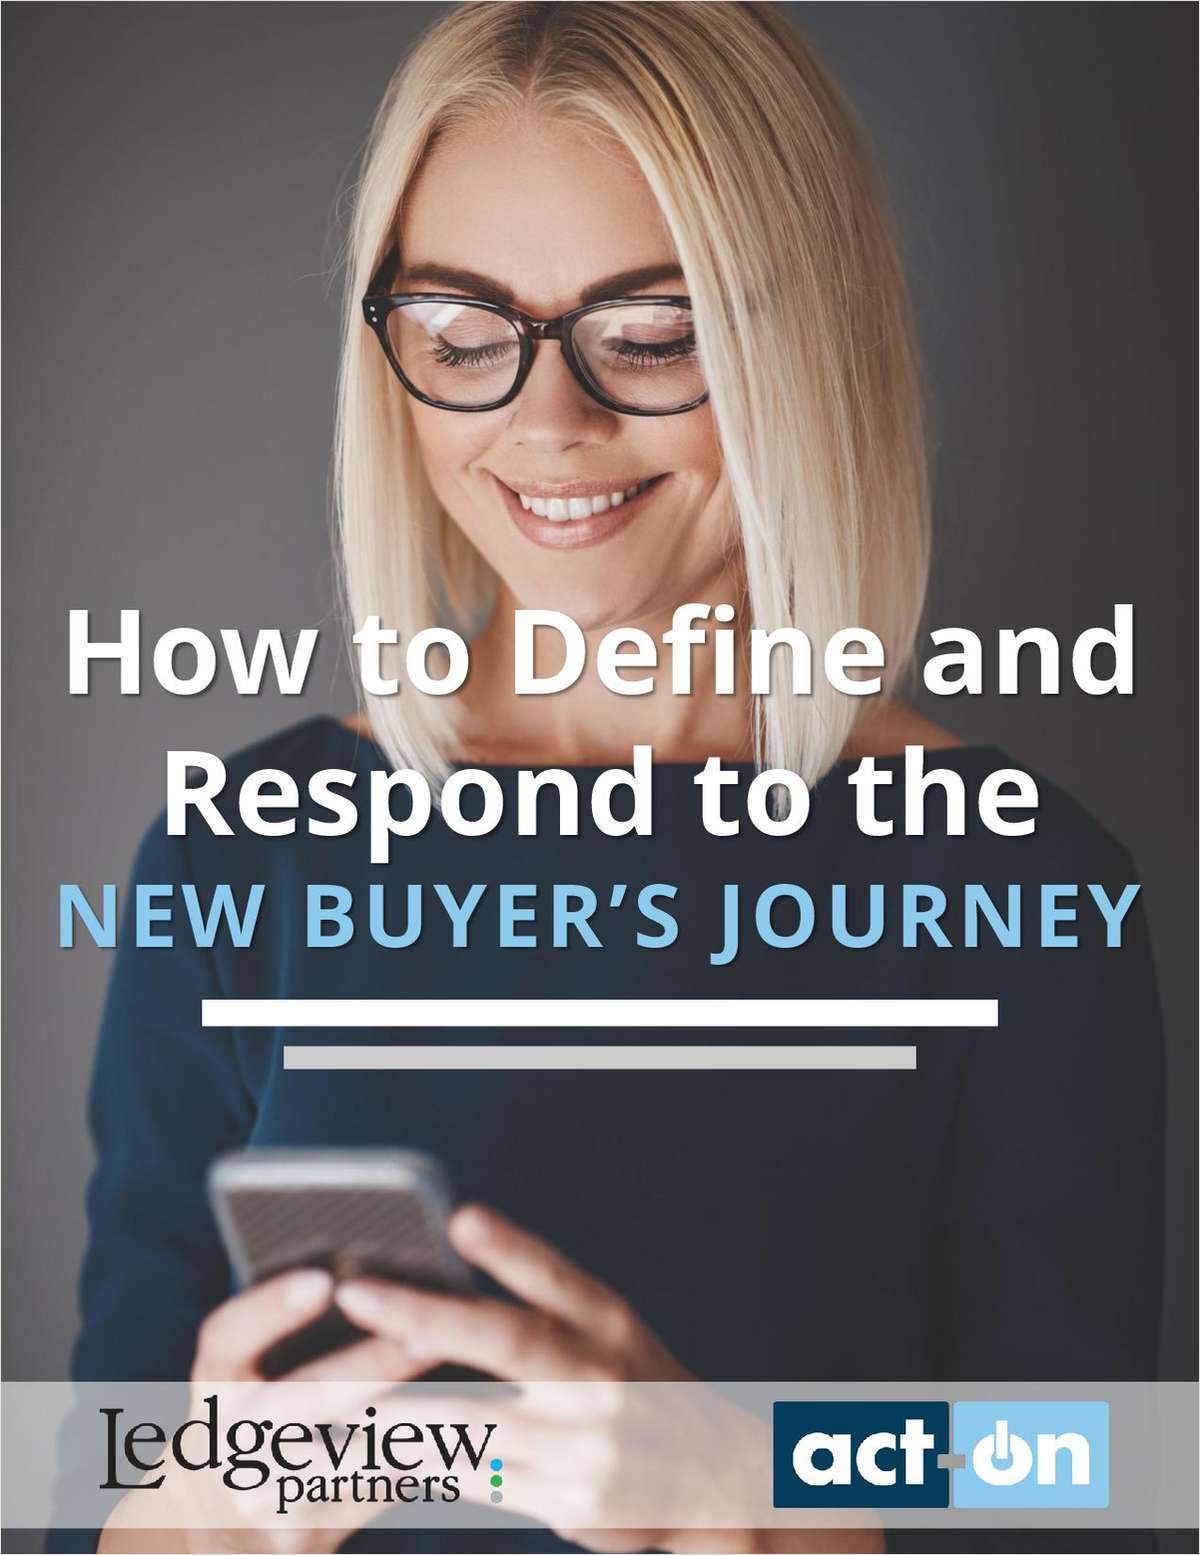 How to Define and Respond to the New Buyer's Journey